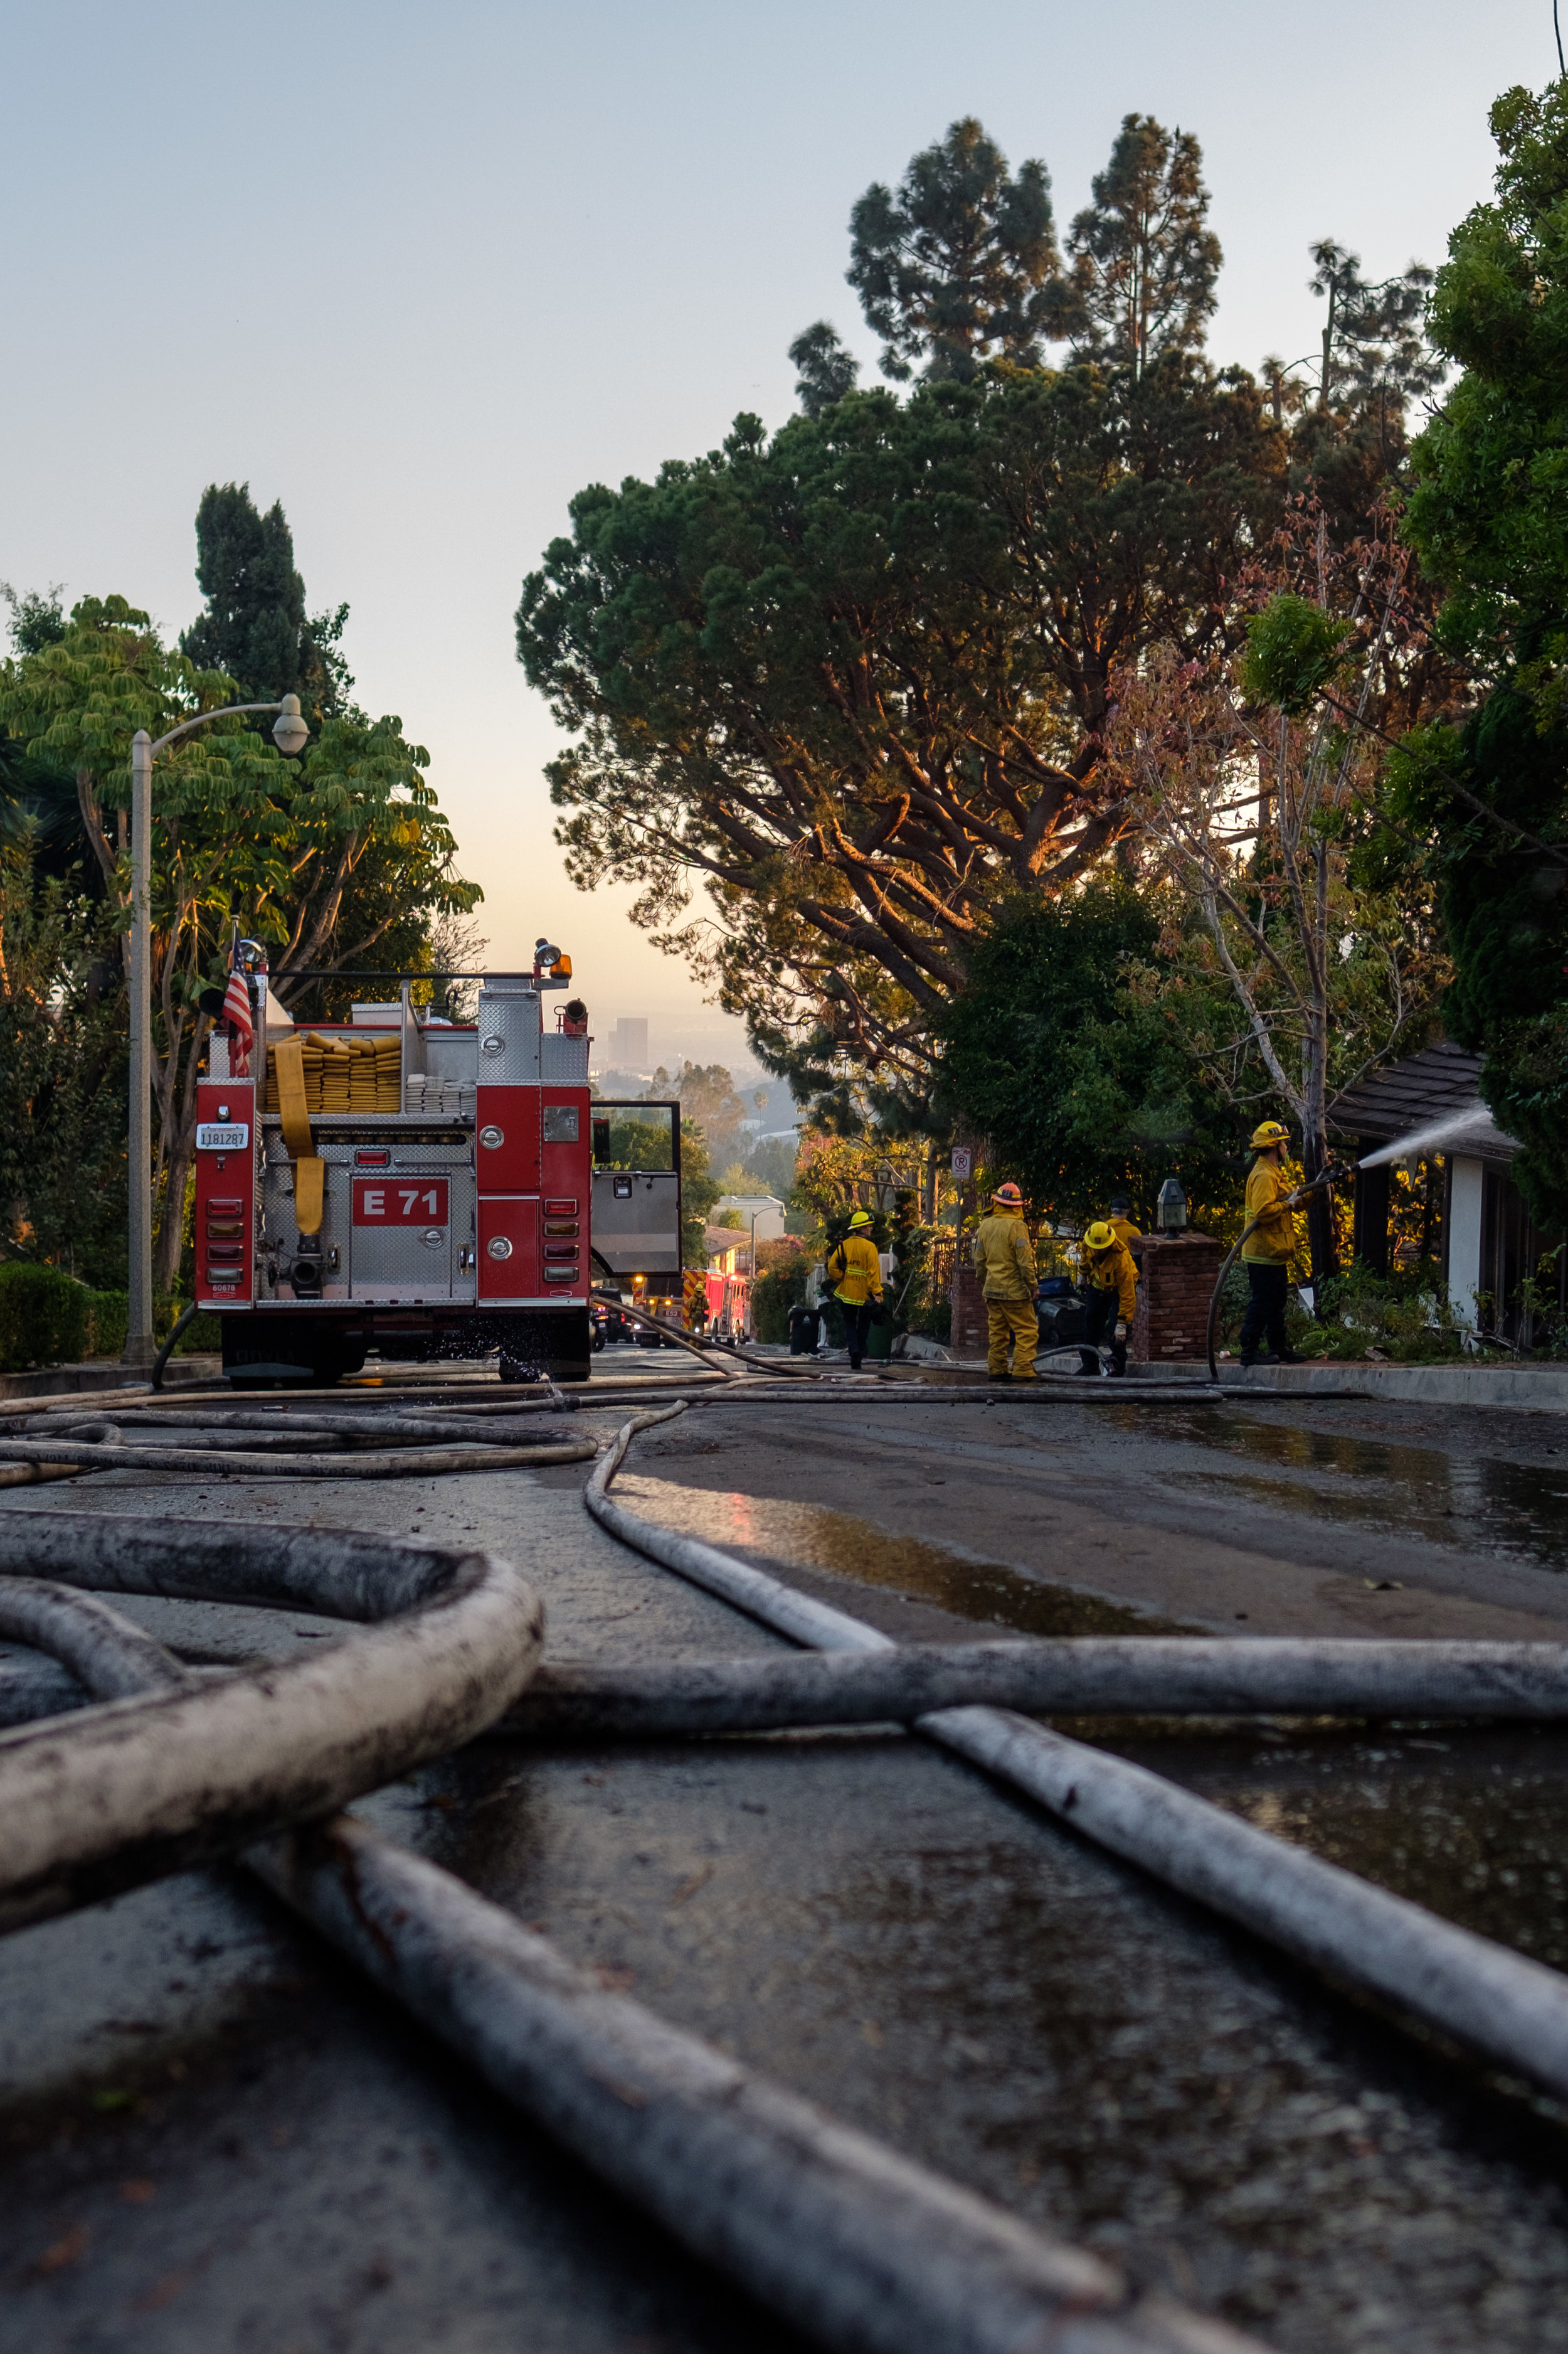 The Los Angeles Fire Department fighting the Skirball Fire that started in the early morning of December 6, 2017 in Los Angeles, Calif. (Photo by Jayrol San Jose)